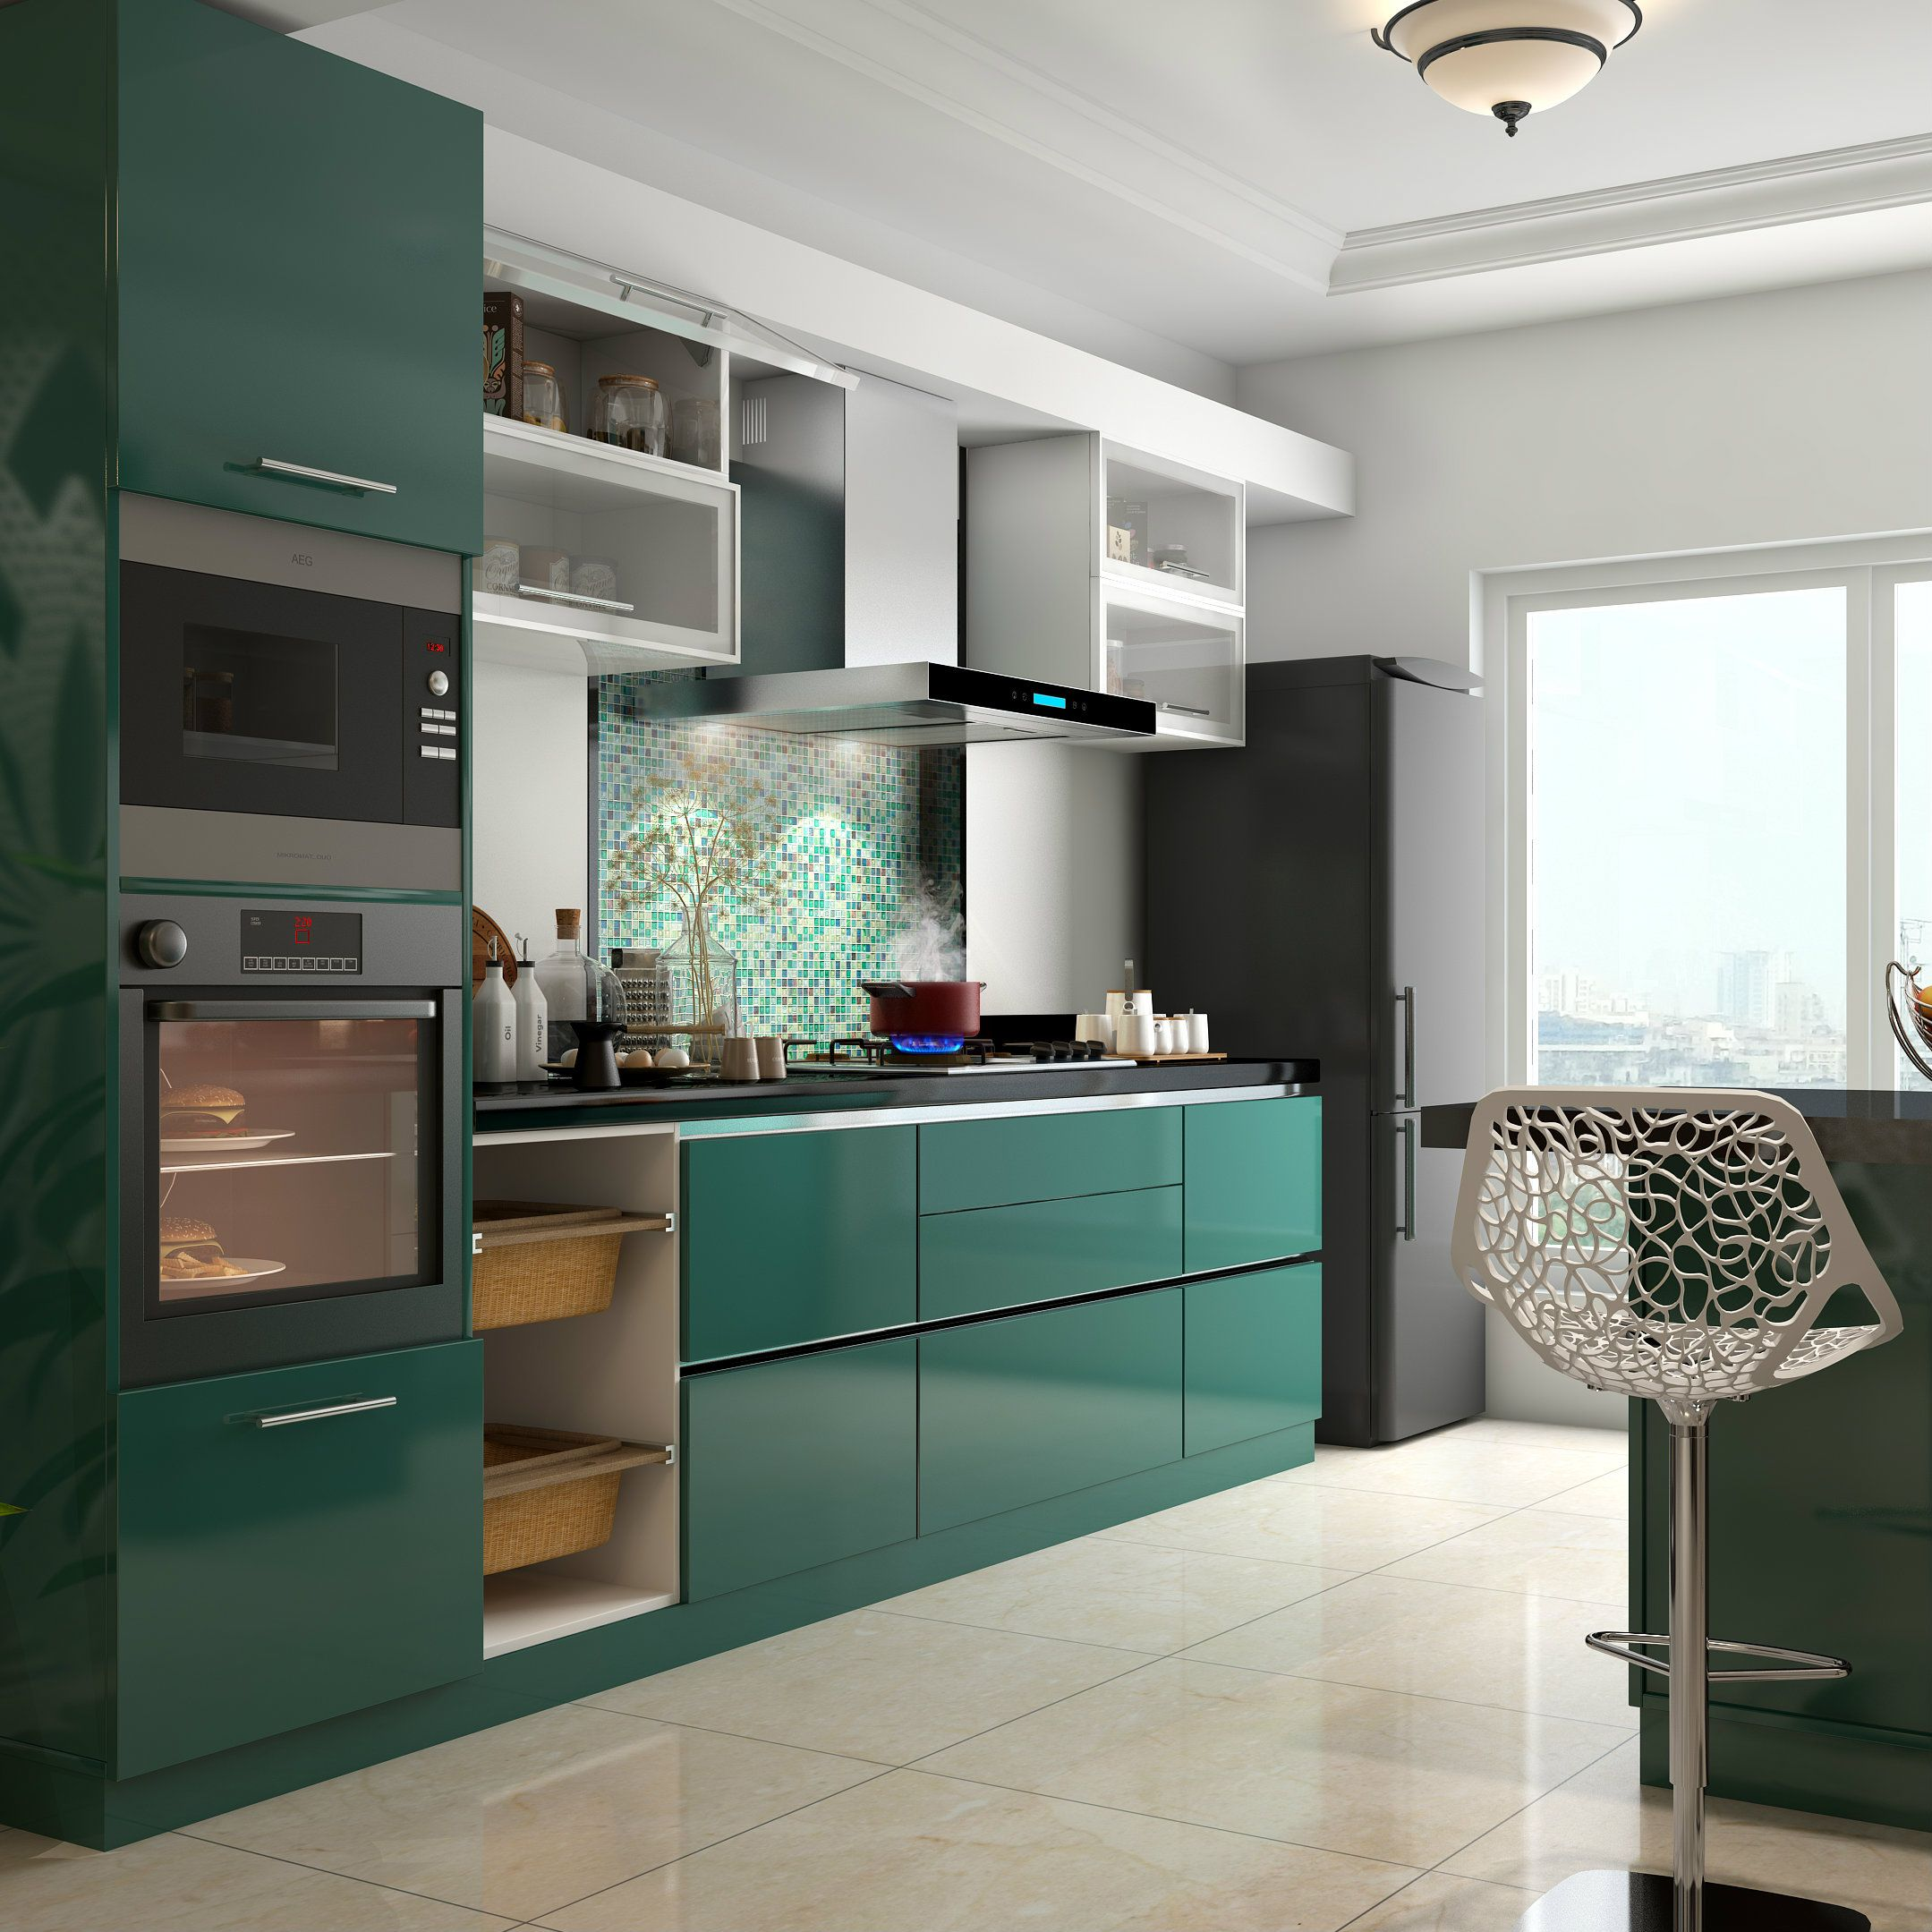 Designer Kitchen Units: Glossy Green Cabinets Infuse Vitality To This Kitchen